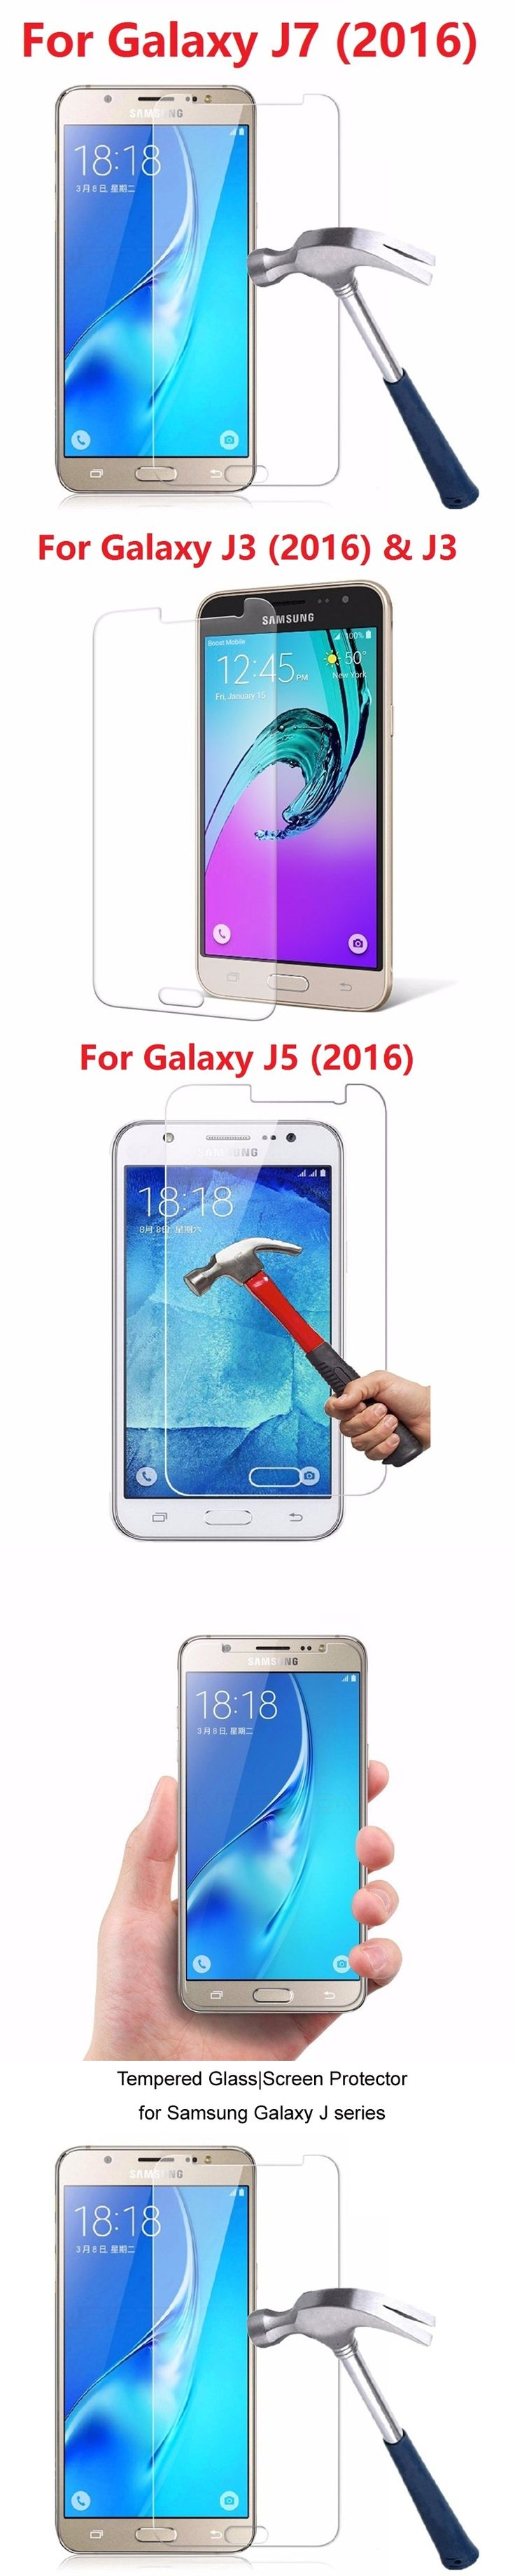 Real premium tempered glass film for samsung galaxy 2016 J1 J2 J3 J5 J7 strach proof screen protector phone film for samusng